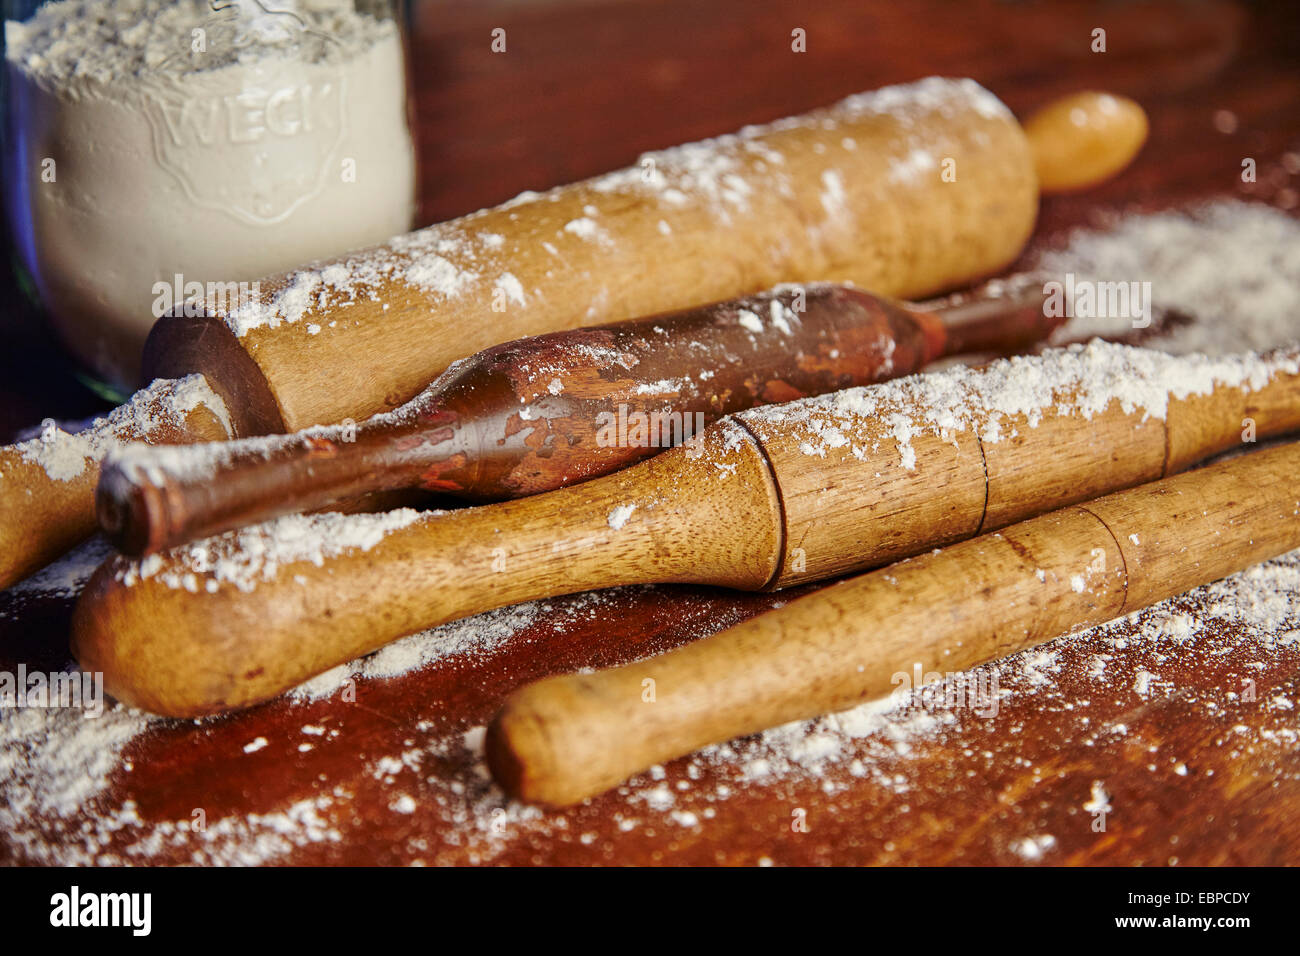 vintage rolling pins covered in flour over a wood table with a glass jar of flour - Stock Image